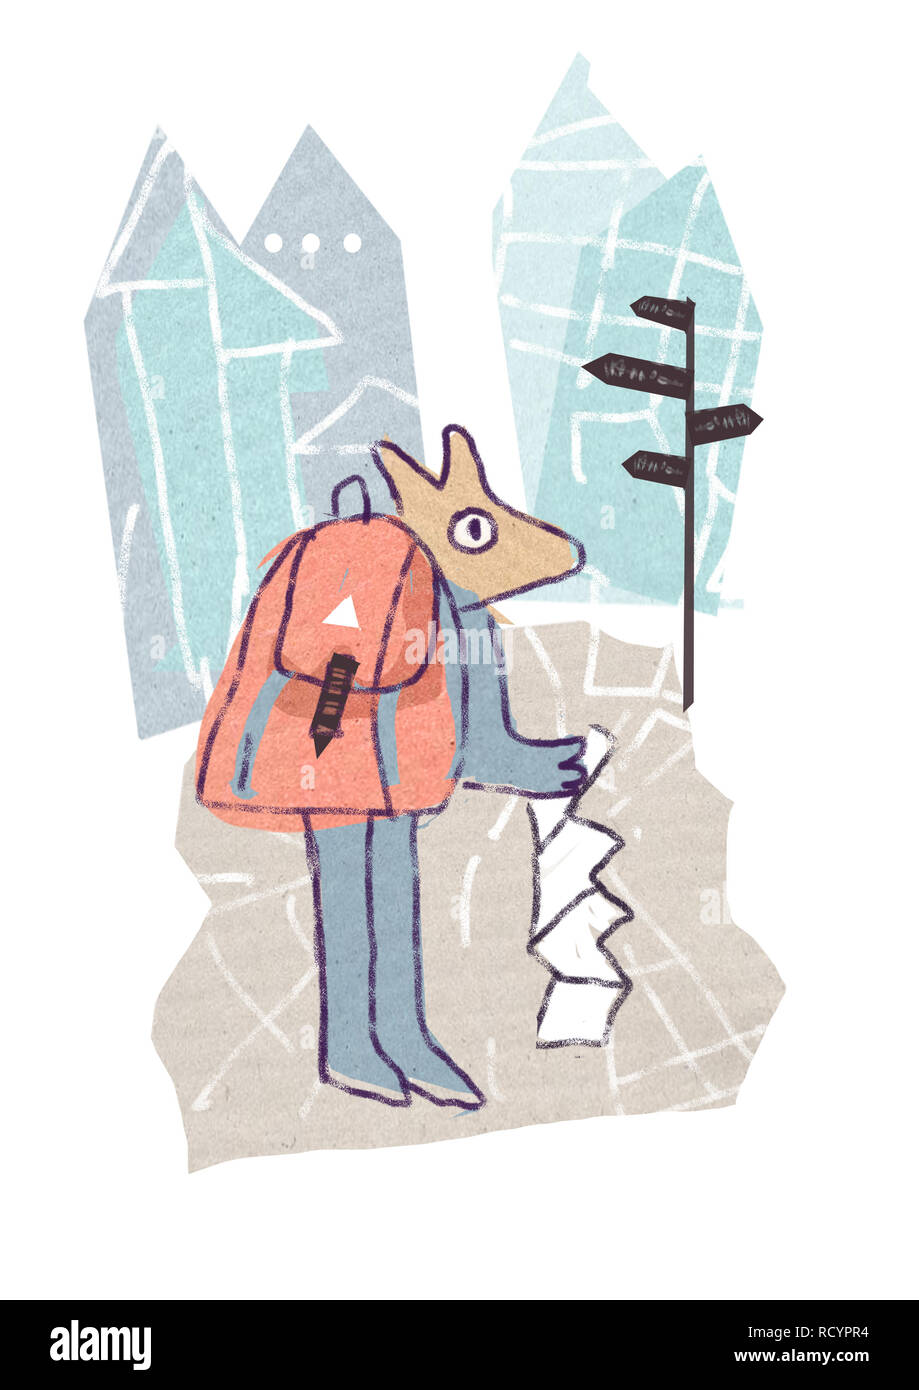 Tourist with a map in hand against the city background.The illustration in cartoon style is isolated on a white background, - Stock Image